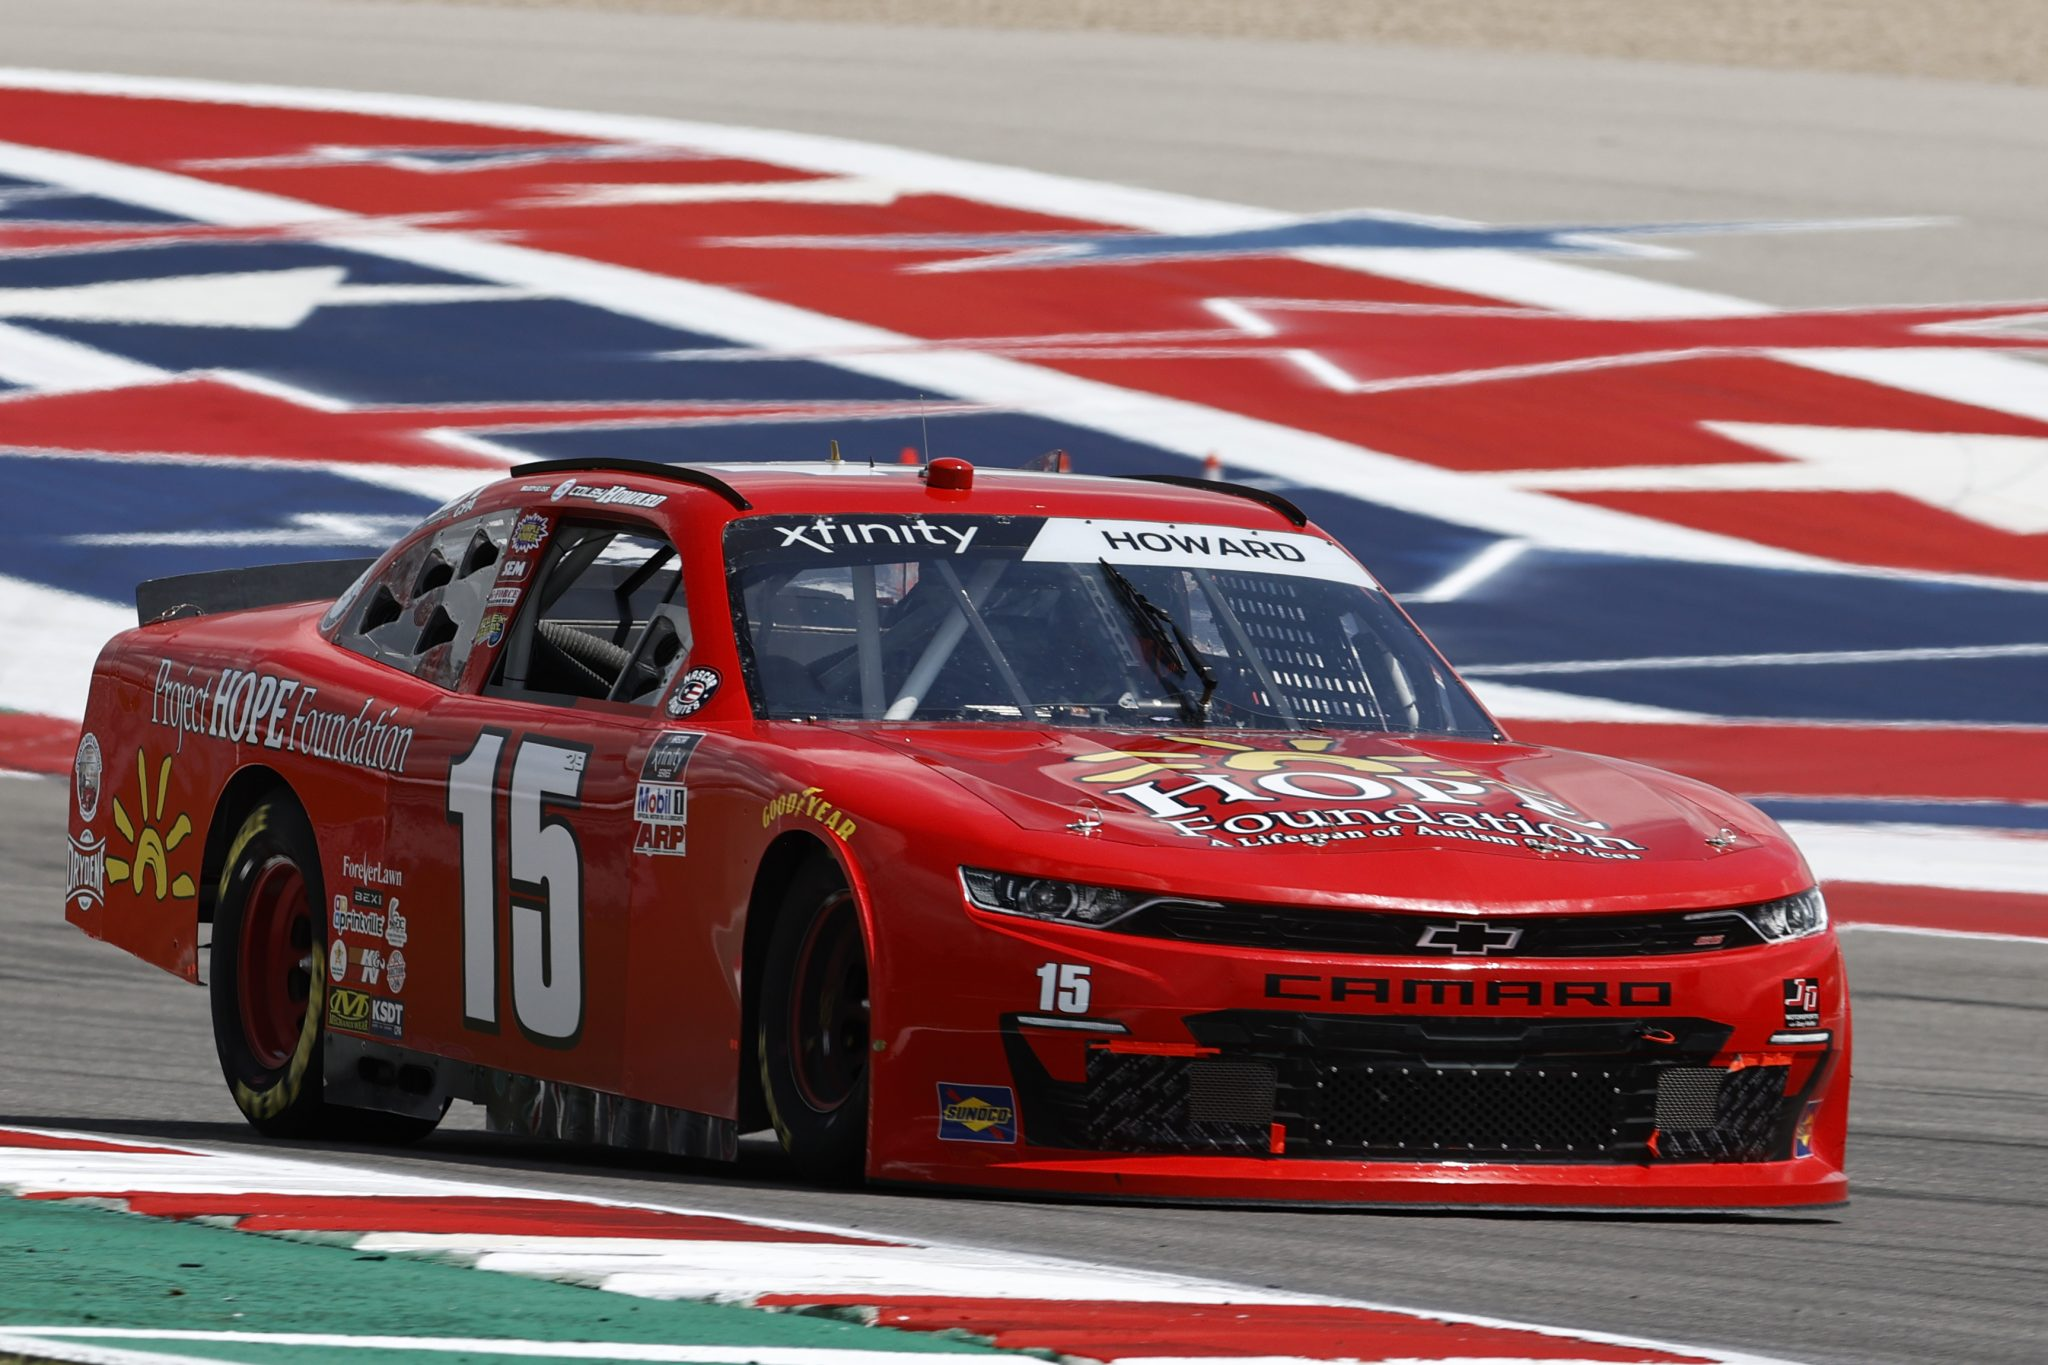 AUSTIN, TEXAS - MAY 21: Colby Howard, driver of the #15 Project Hope Foundation Chevrolet, drives during practice for the NASCAR Xfinity Series Pit Boss 250 at Circuit of The Americas on May 21, 2021 in Austin, Texas. (Photo by Chris Graythen/Getty Images) | Getty Images